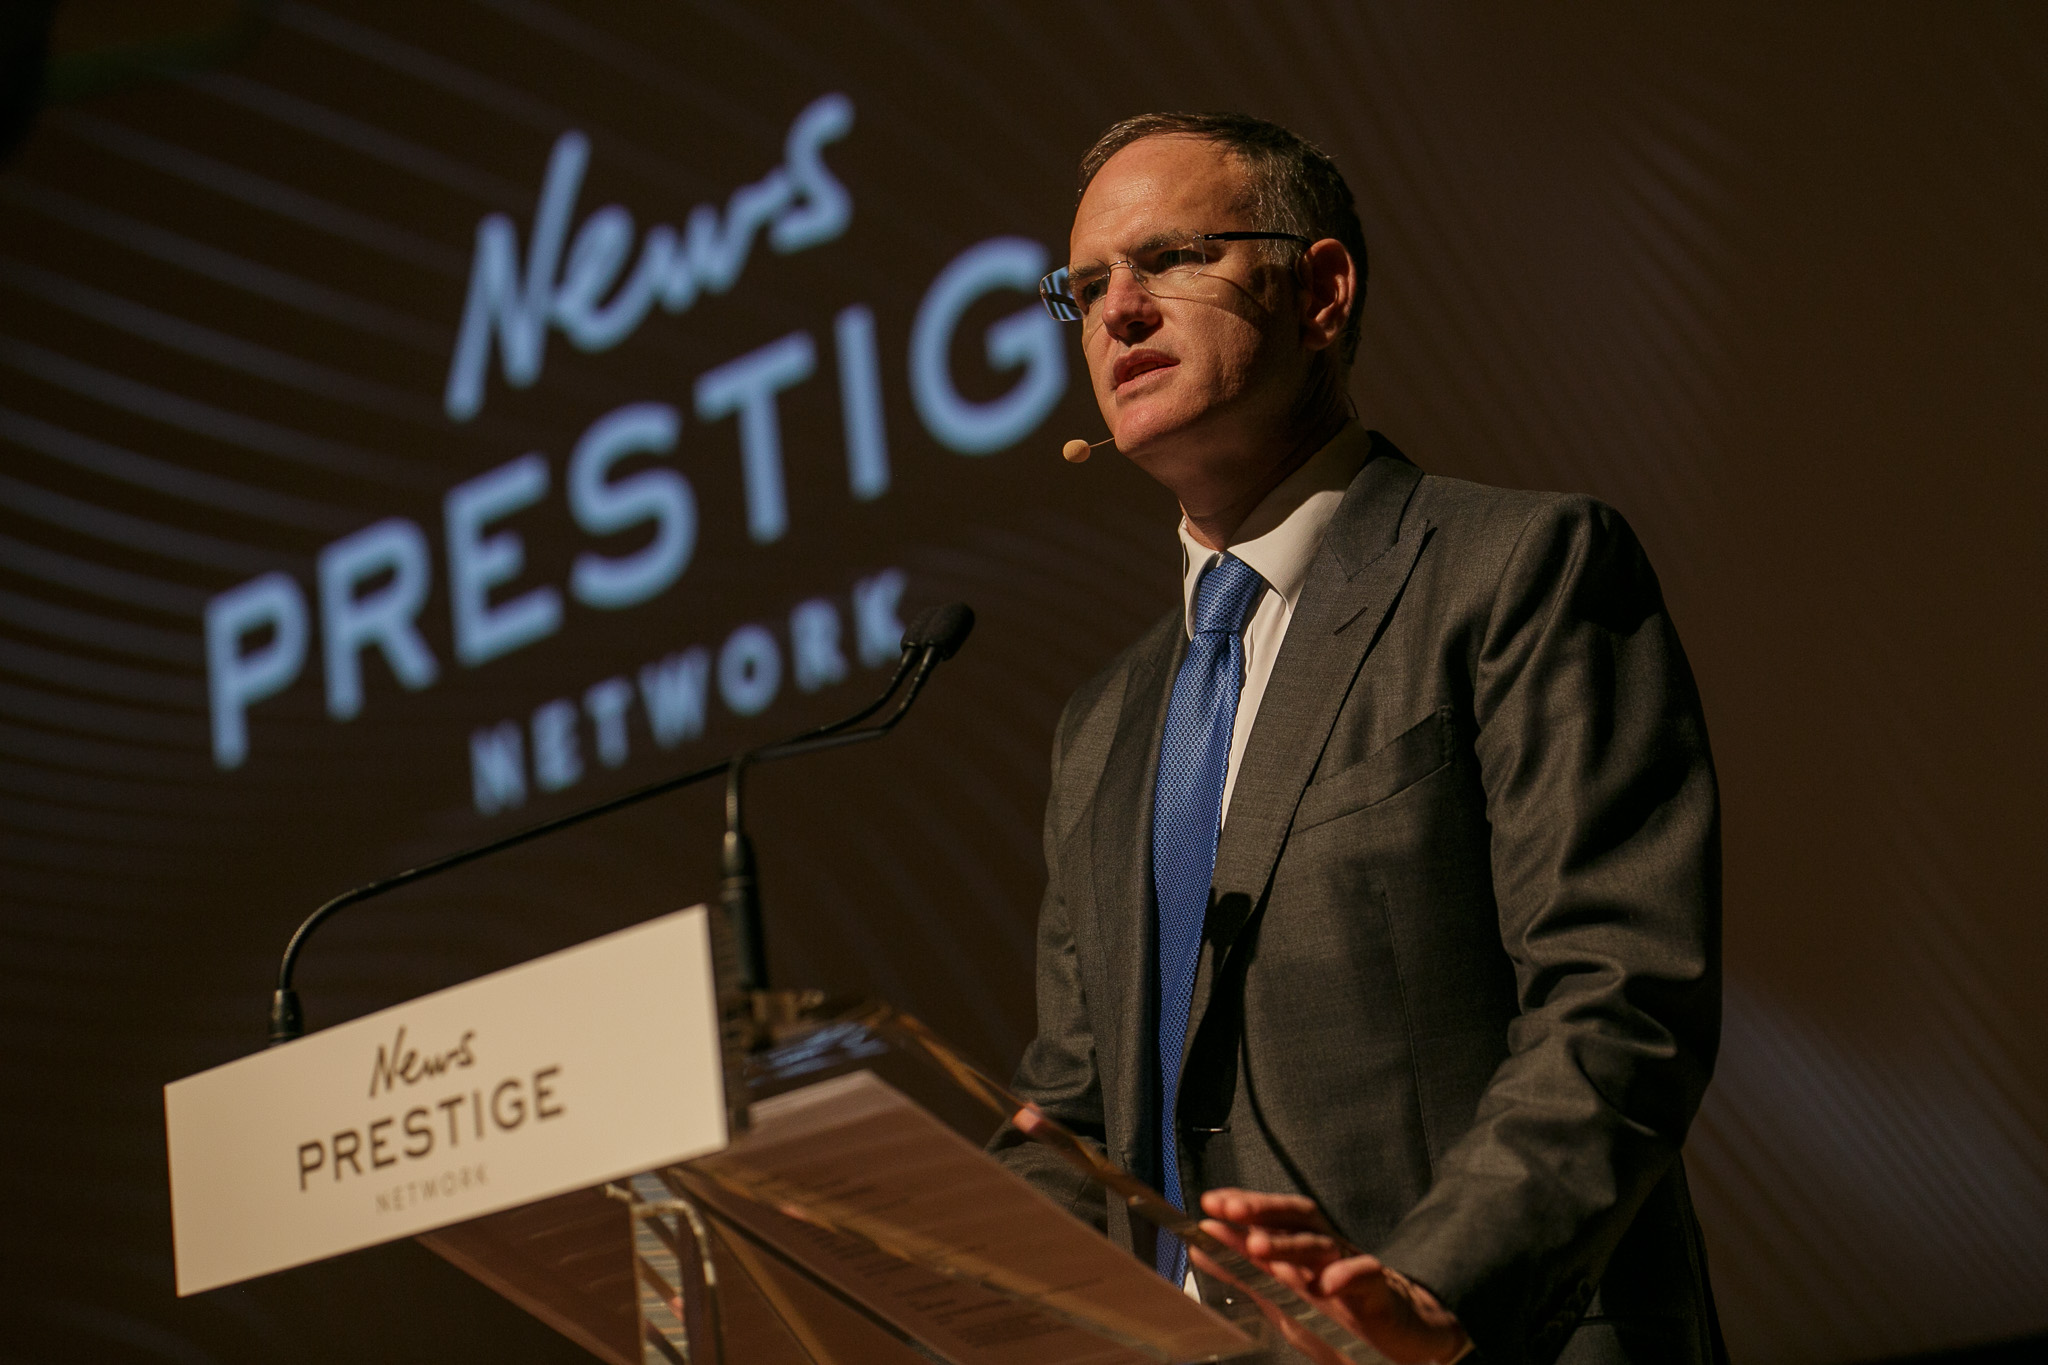 Michael Miller at the News Prestige event